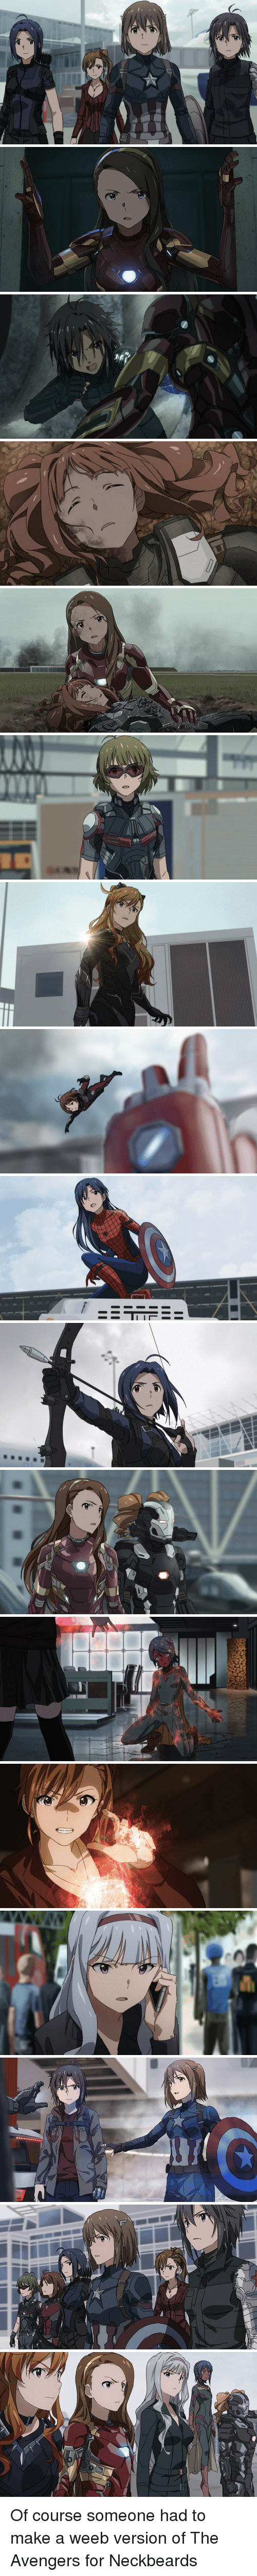 Neckbeards: フ   H   一一 一一   vii.iii Of course someone had to make a weeb version of The Avengers for Neckbeards